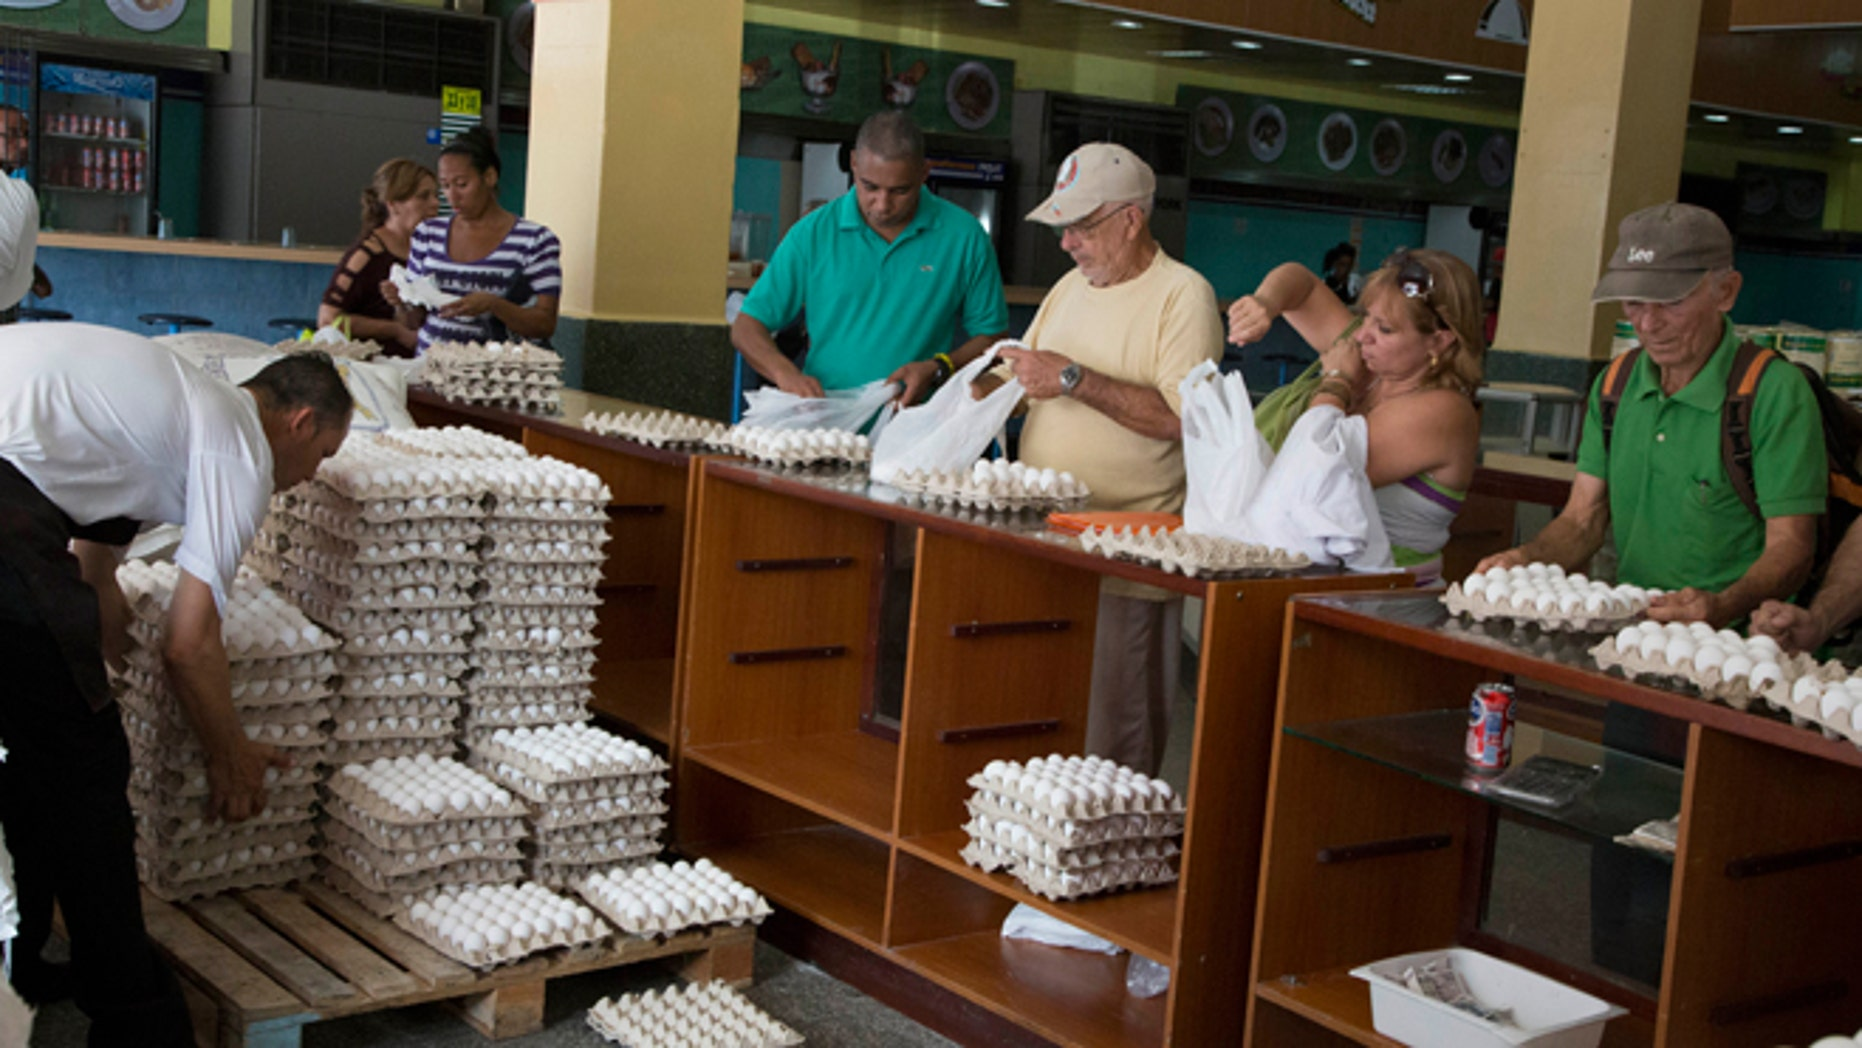 People buy eggs at a a store in Havana, Cuba, Friday, March 20, 2015. More than a dozen Cuban officials have been sentenced to between five and 15 years in prison in connection with what authorities call a scheme to divert millions of eggs to the black market. (AP Photo/Desmond Boylan)